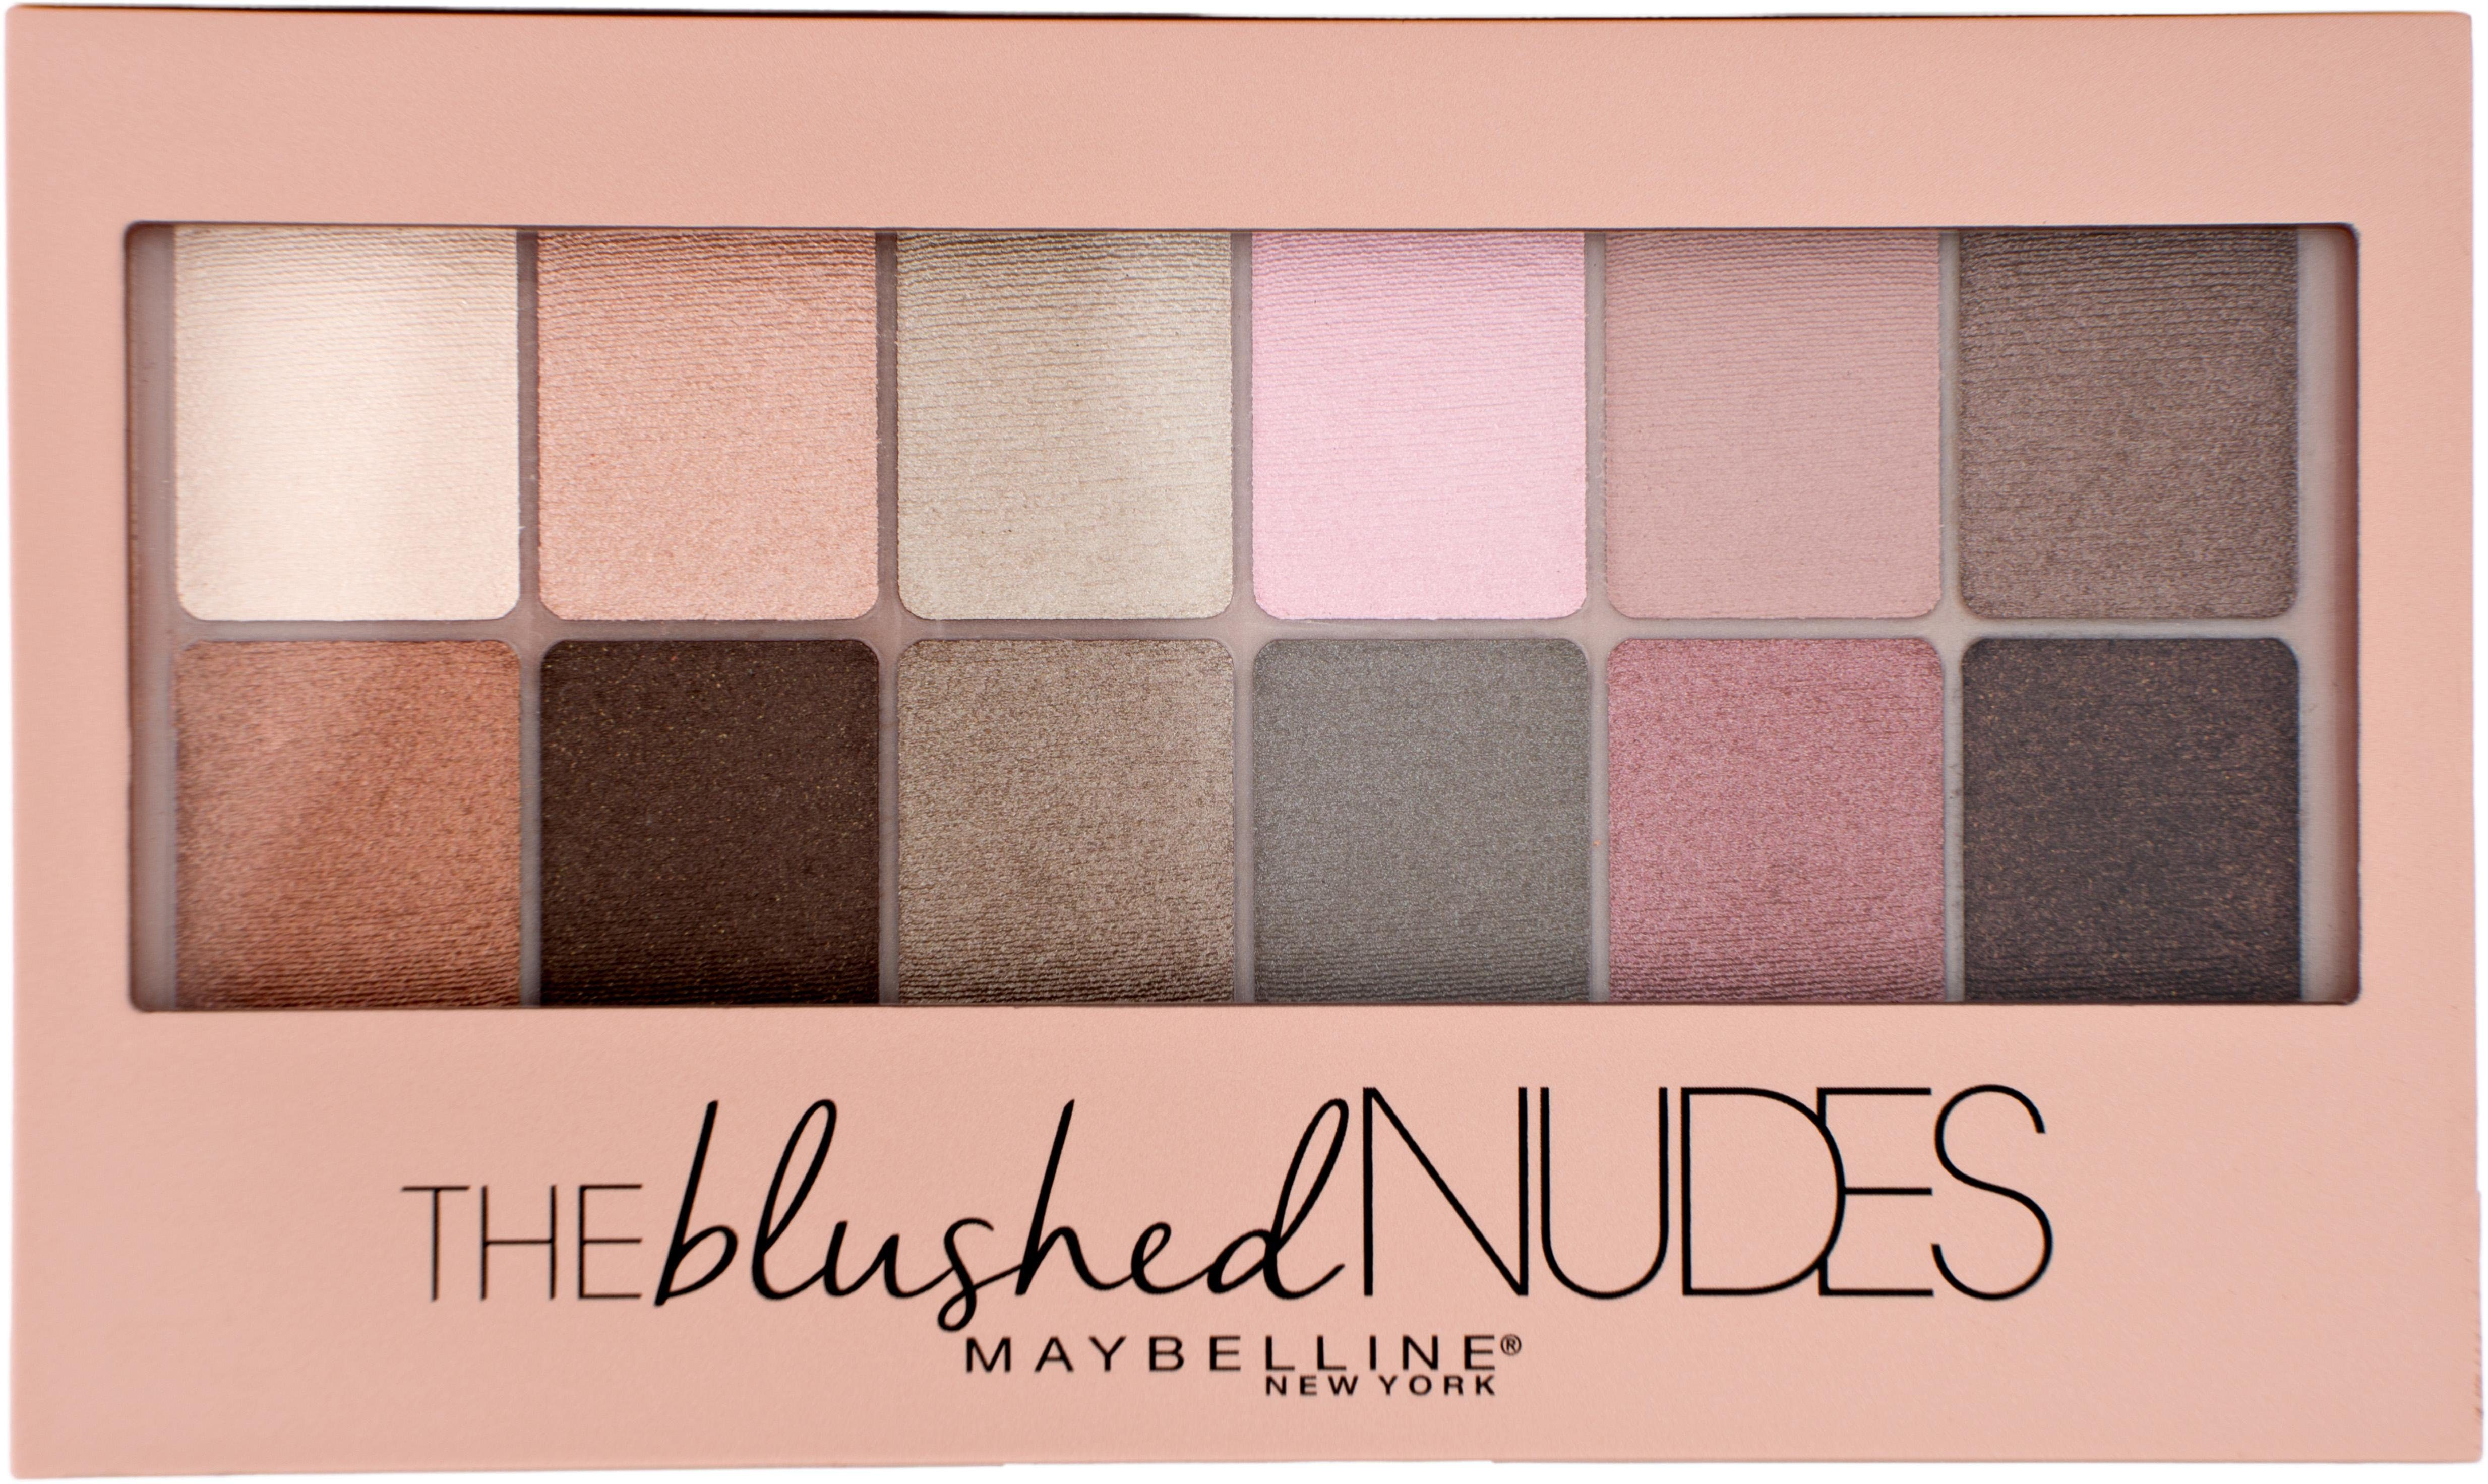 Maybelline New York, »The Blushed Nudes«, Lidschatten-Palette